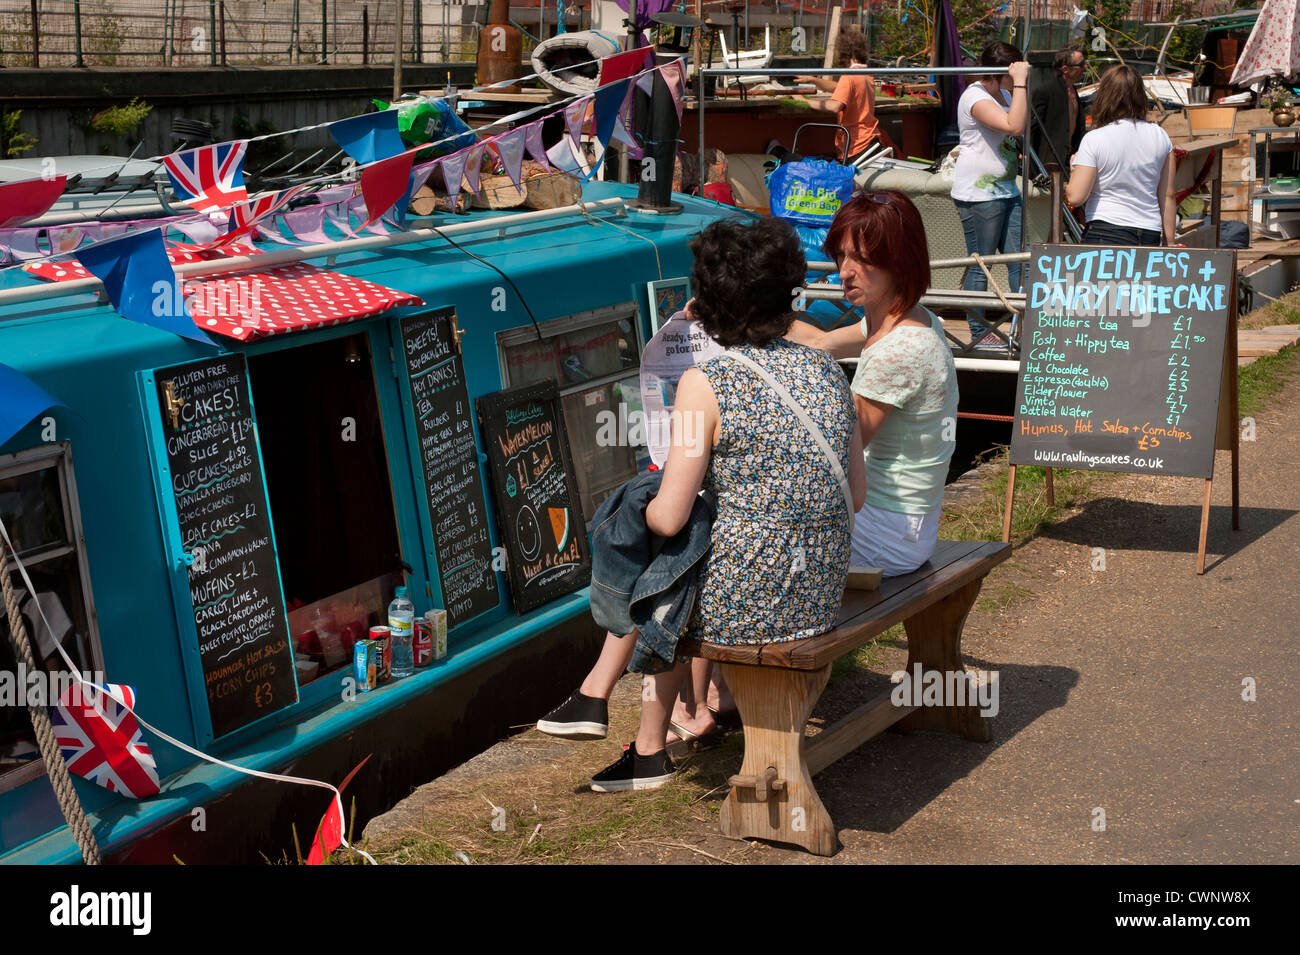 Regents Canal Floating Market in Mile End, London - Stock Image